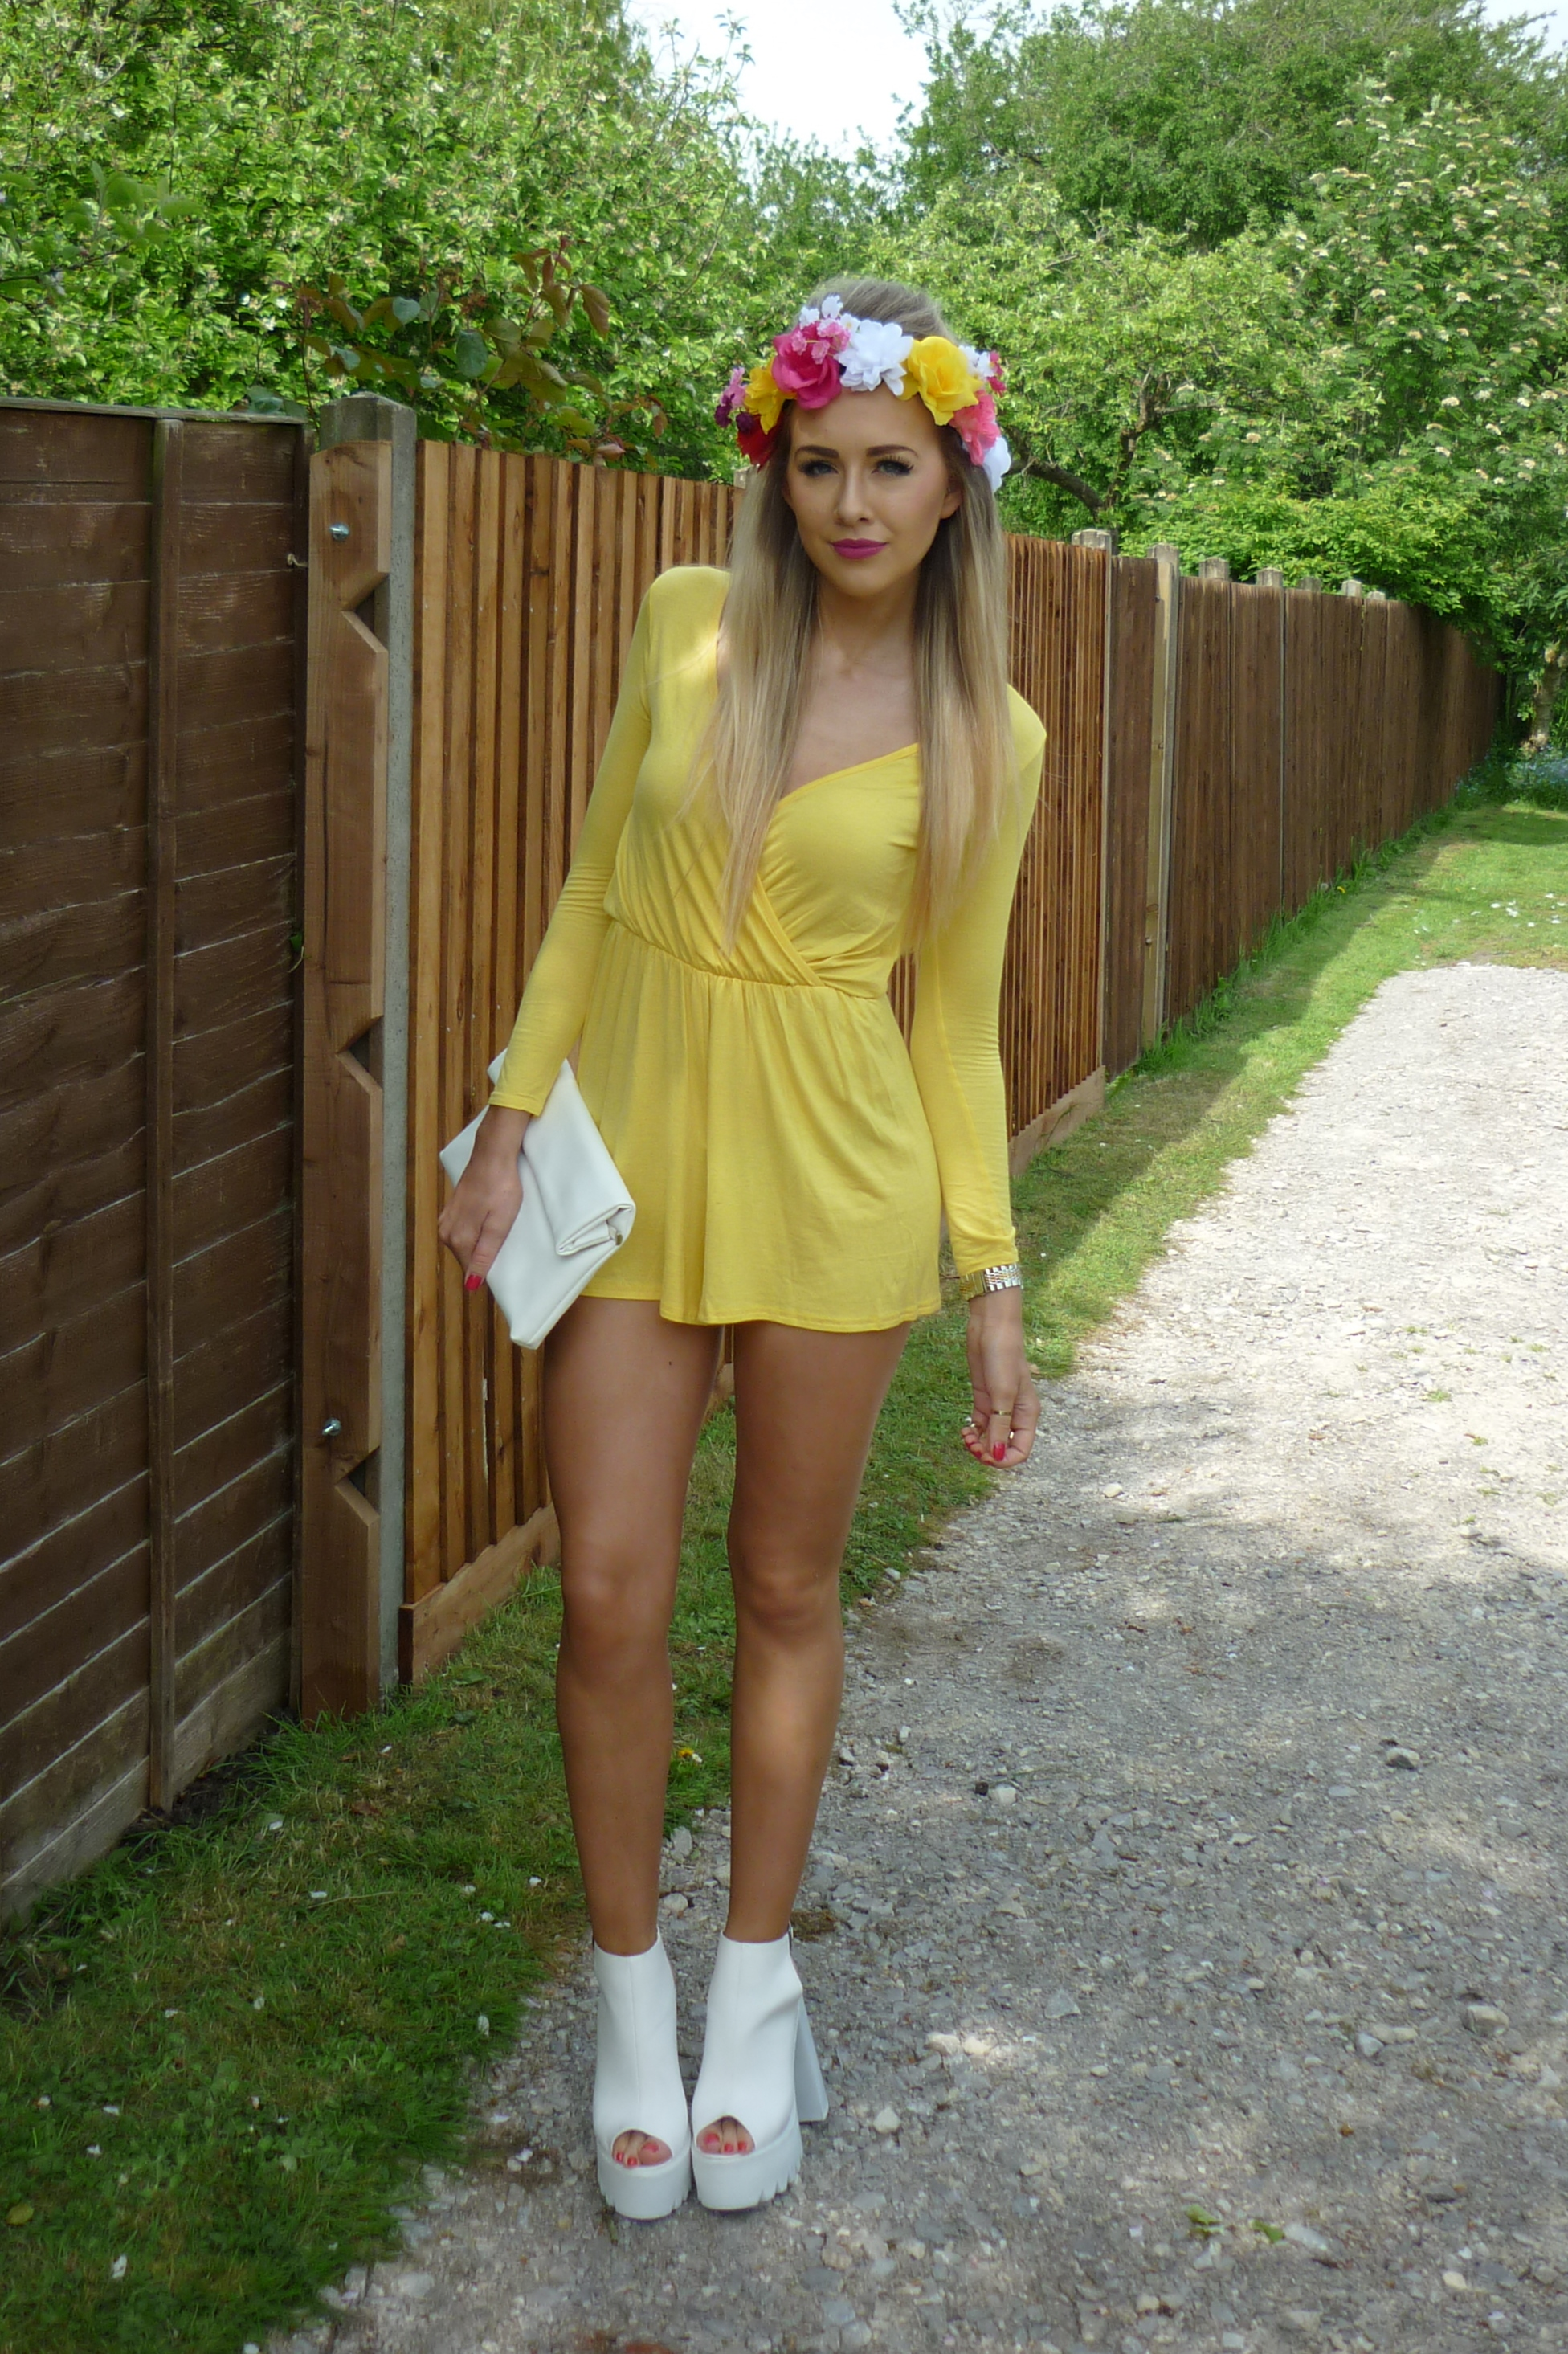 Pretty Little Thing Playsuit Review - LUCY LU ROSE